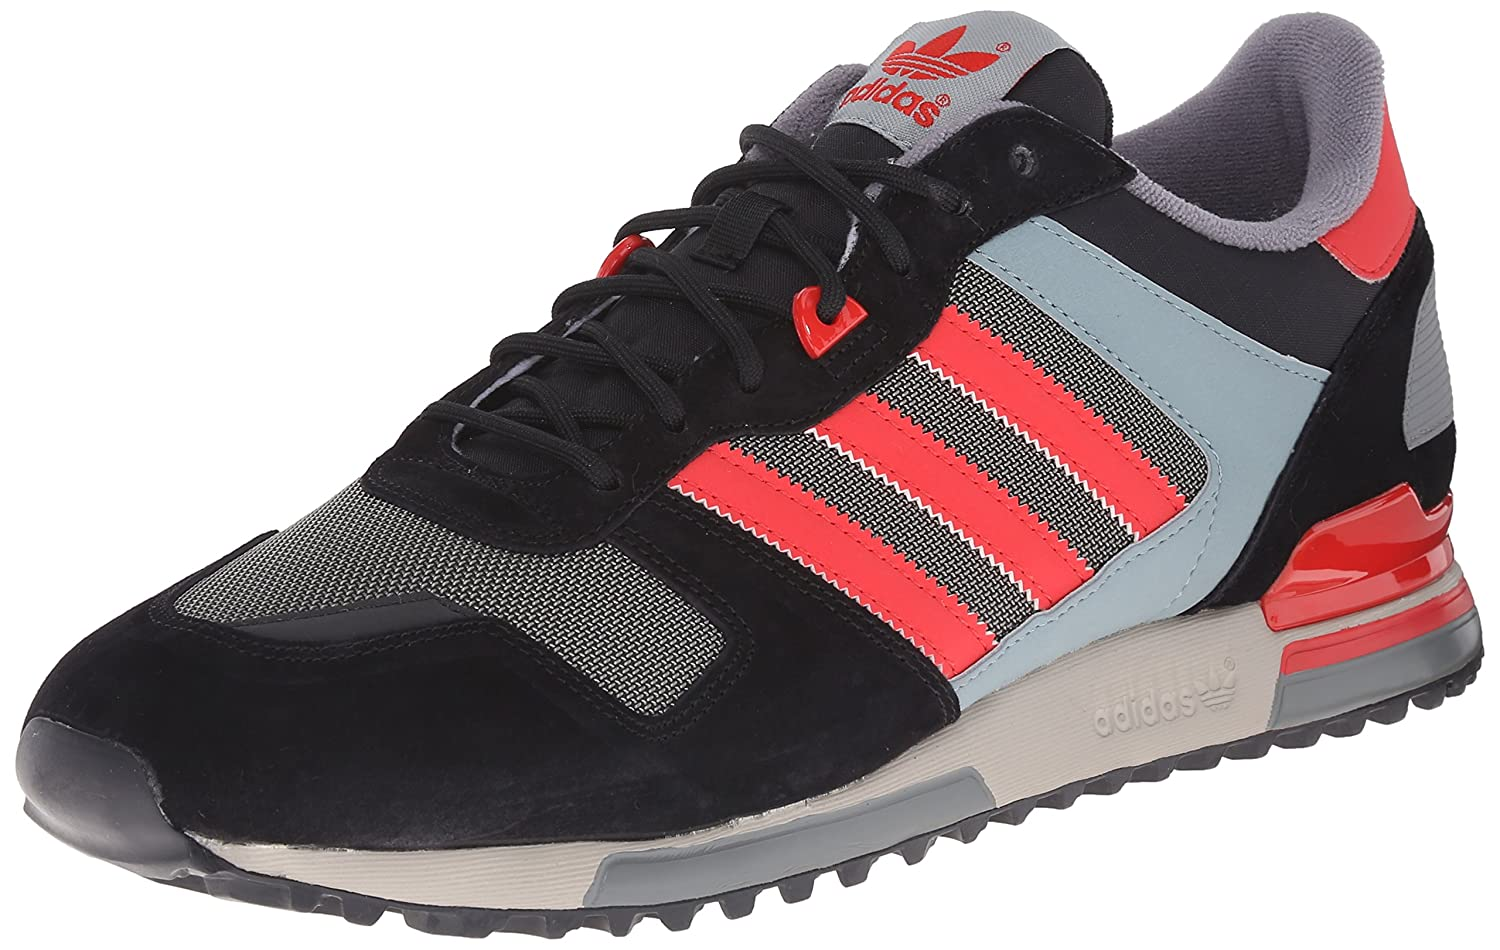 low priced 23b1d 877f8 ... adidas zx 700 shoes